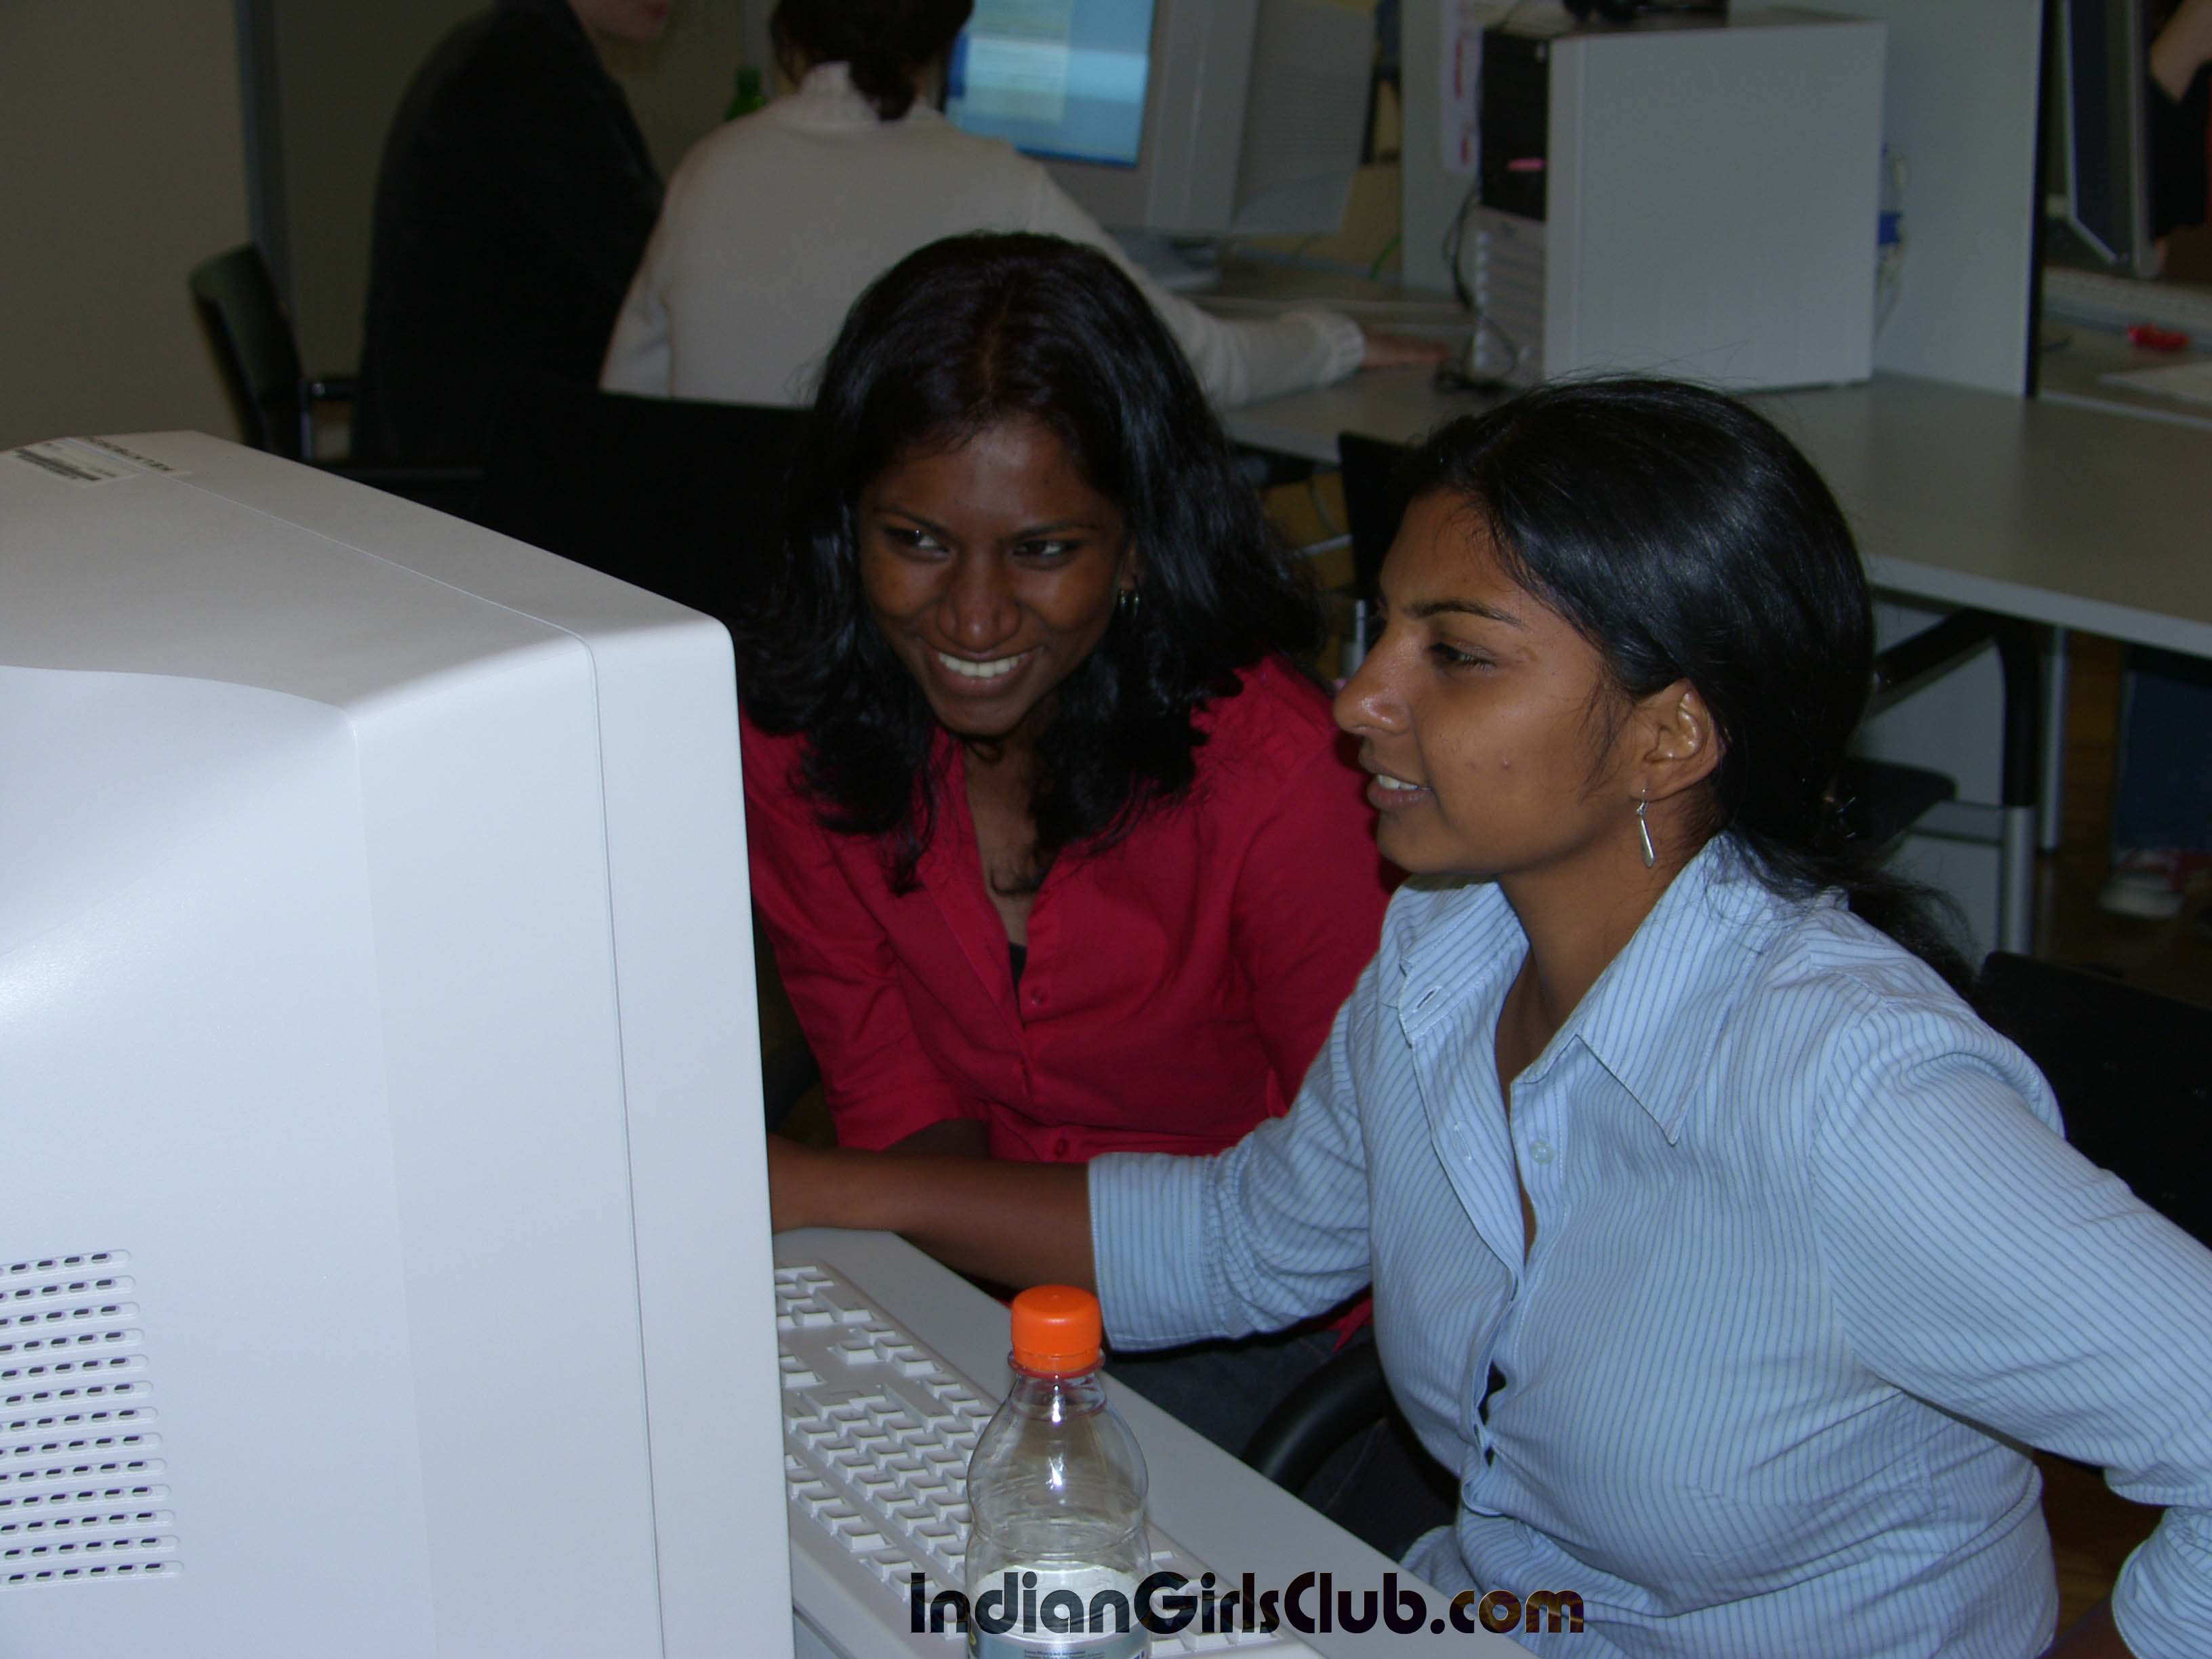 village-indian-girls-computer